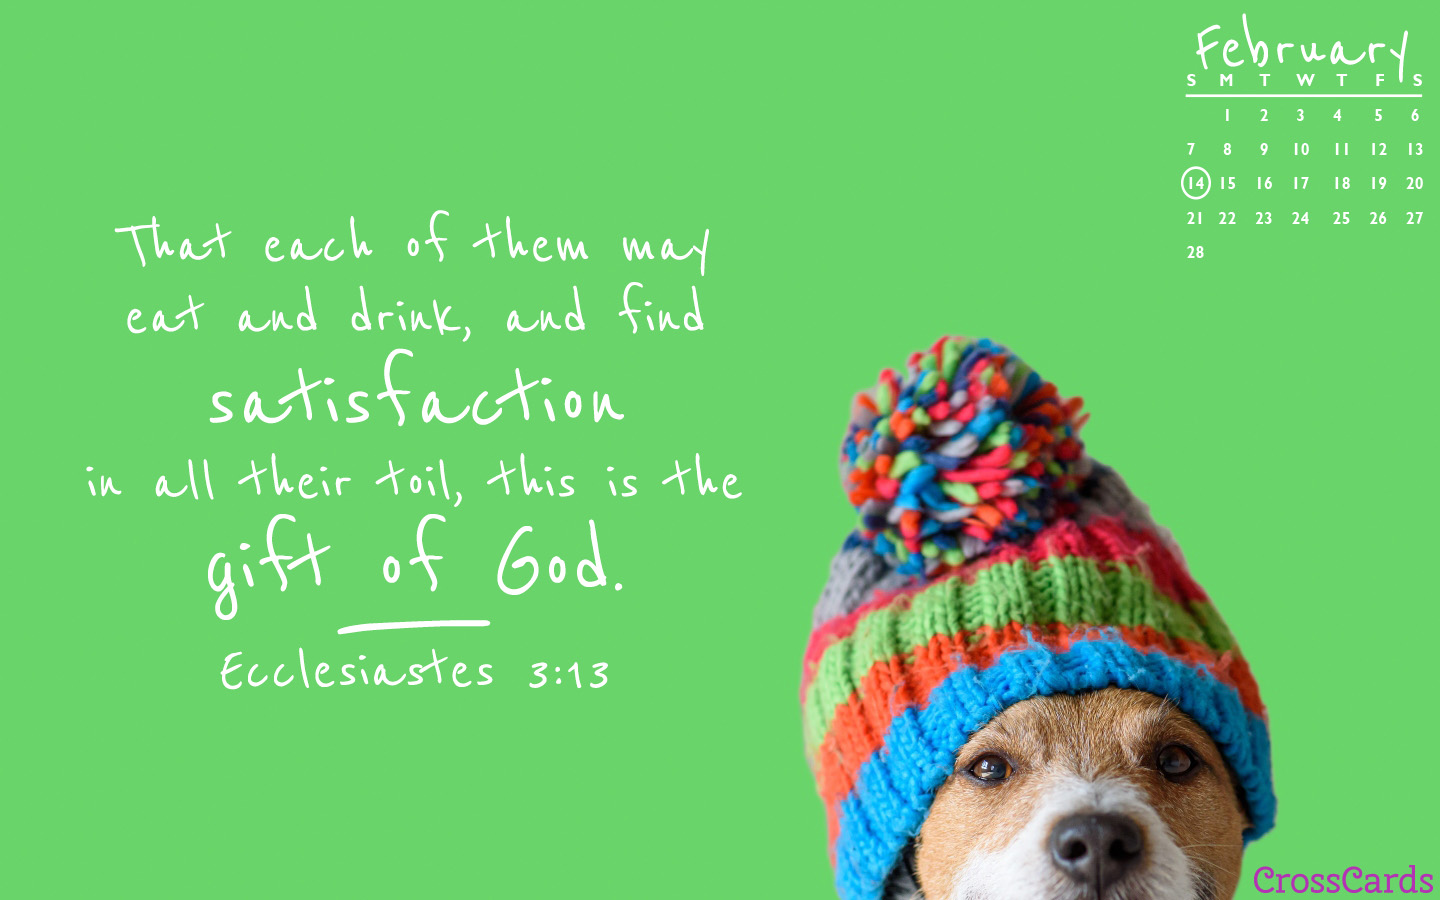 February 2021 - Ecclesiastes 3:13 mobile phone wallpaper